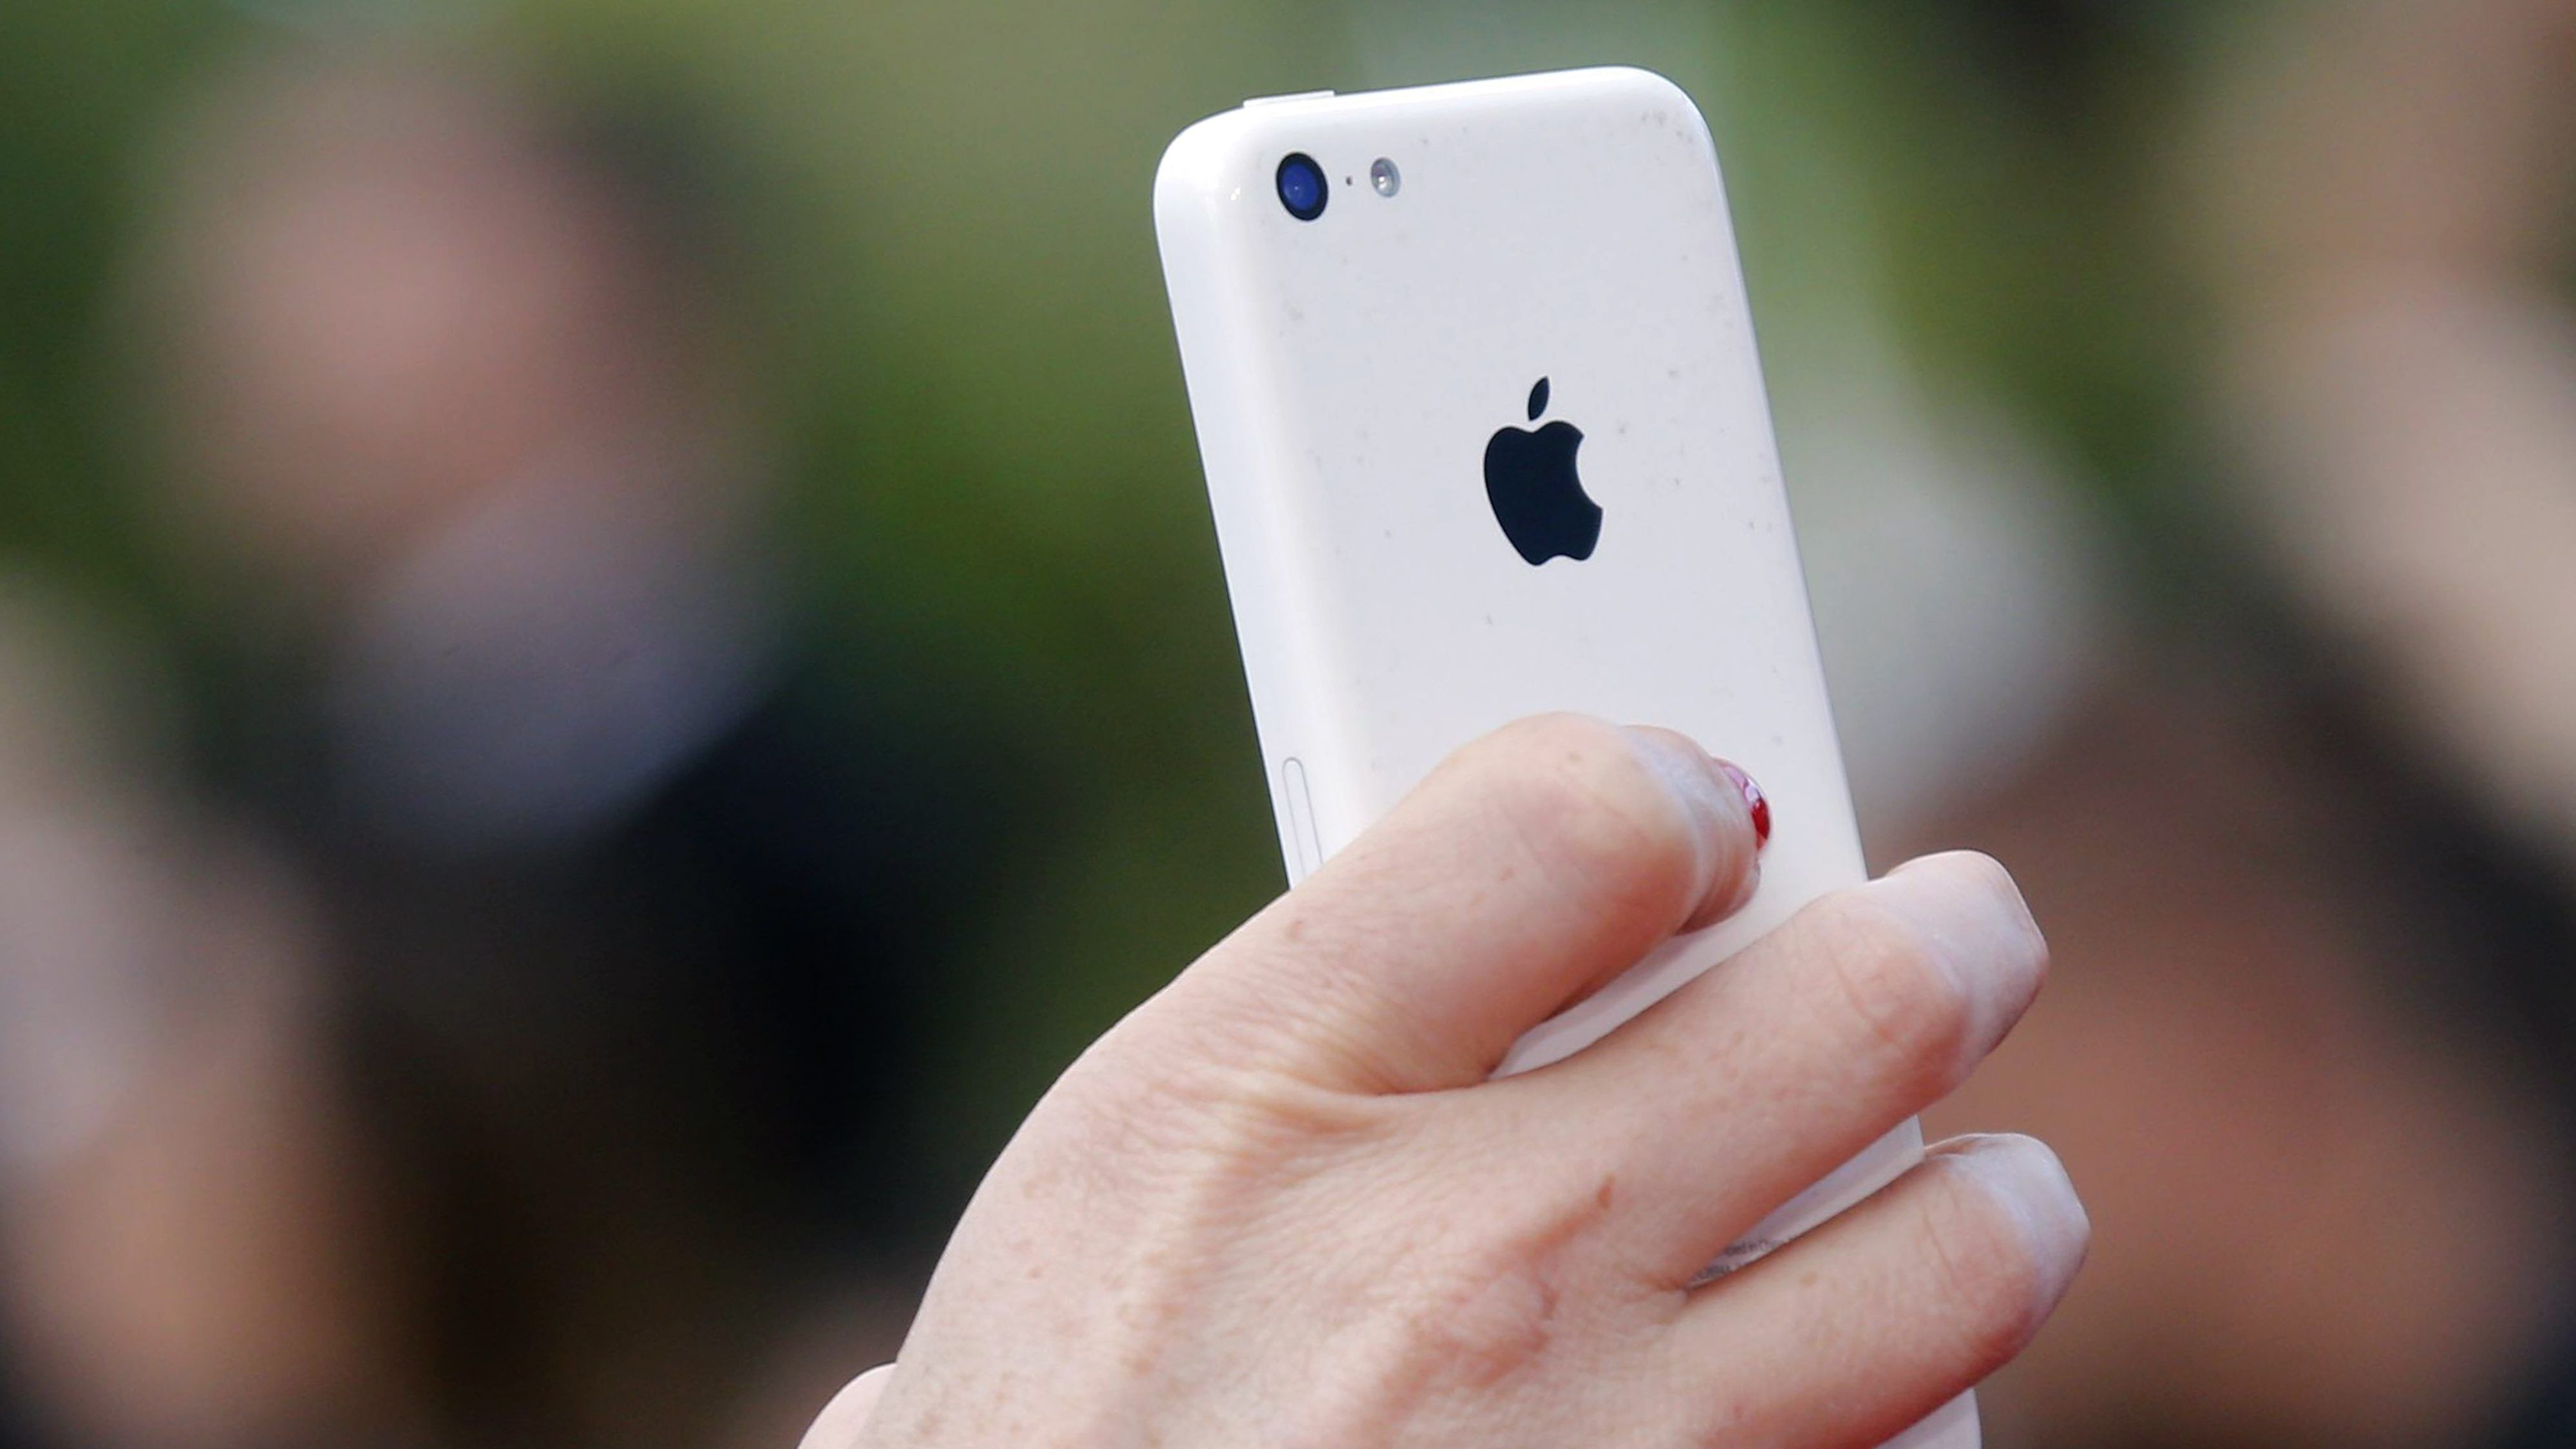 A hand holding a white iPhone